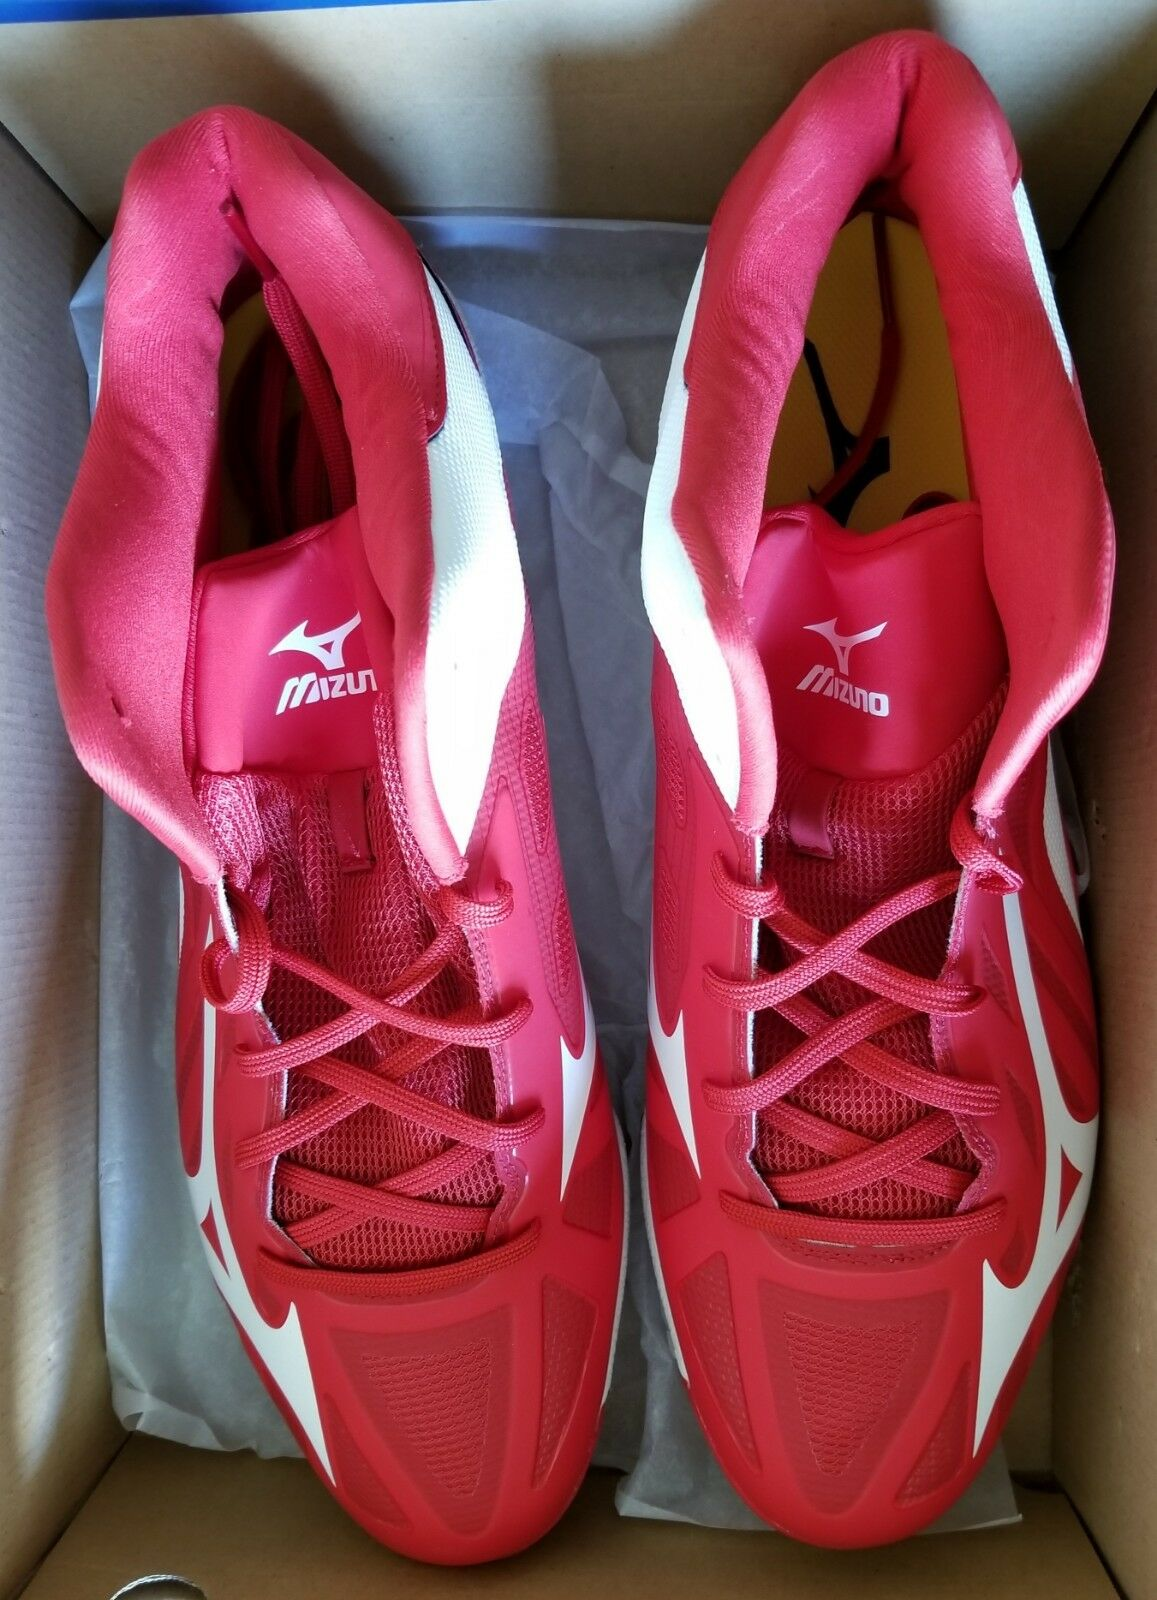 MIZUNO BASEBALL HEIST IQ MID 320500 BASEBALL MIZUNO METAL CLEATS SIZE 16 - ROT - NEW WITH BOX bae49a